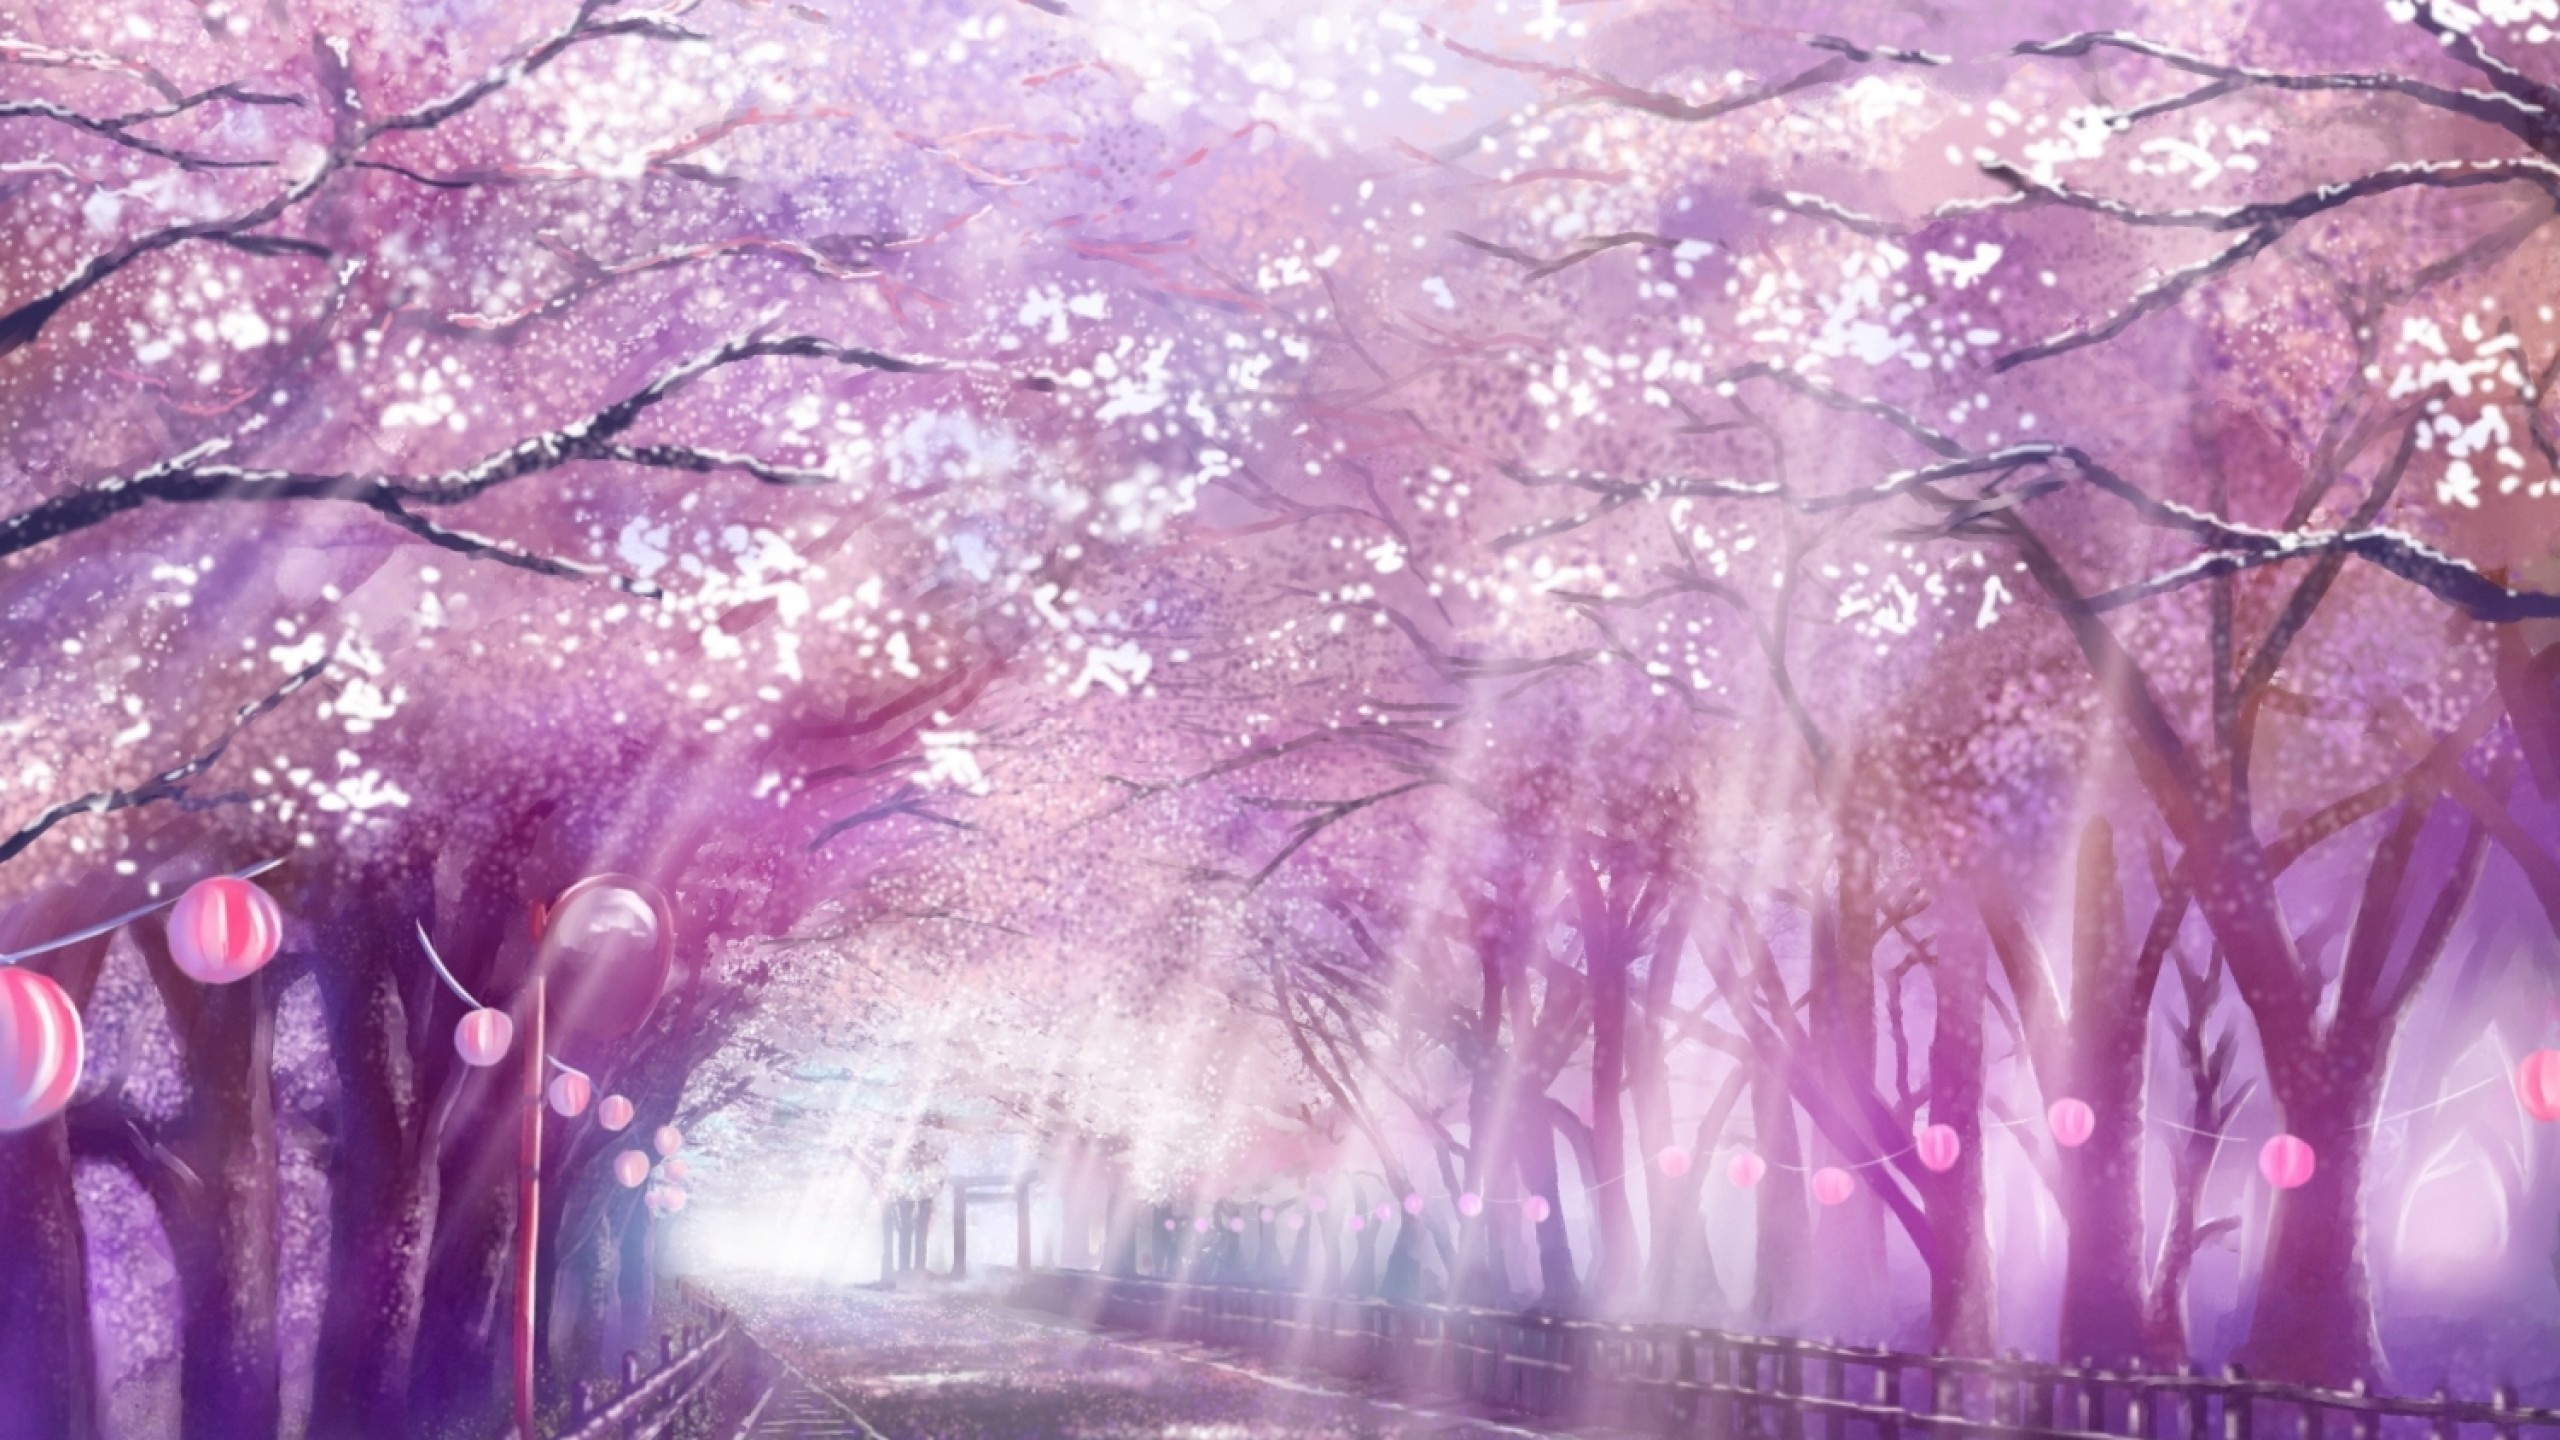 42 New 2560x1440 Wallpaper Anime Scenery Images Anime Wallpapers